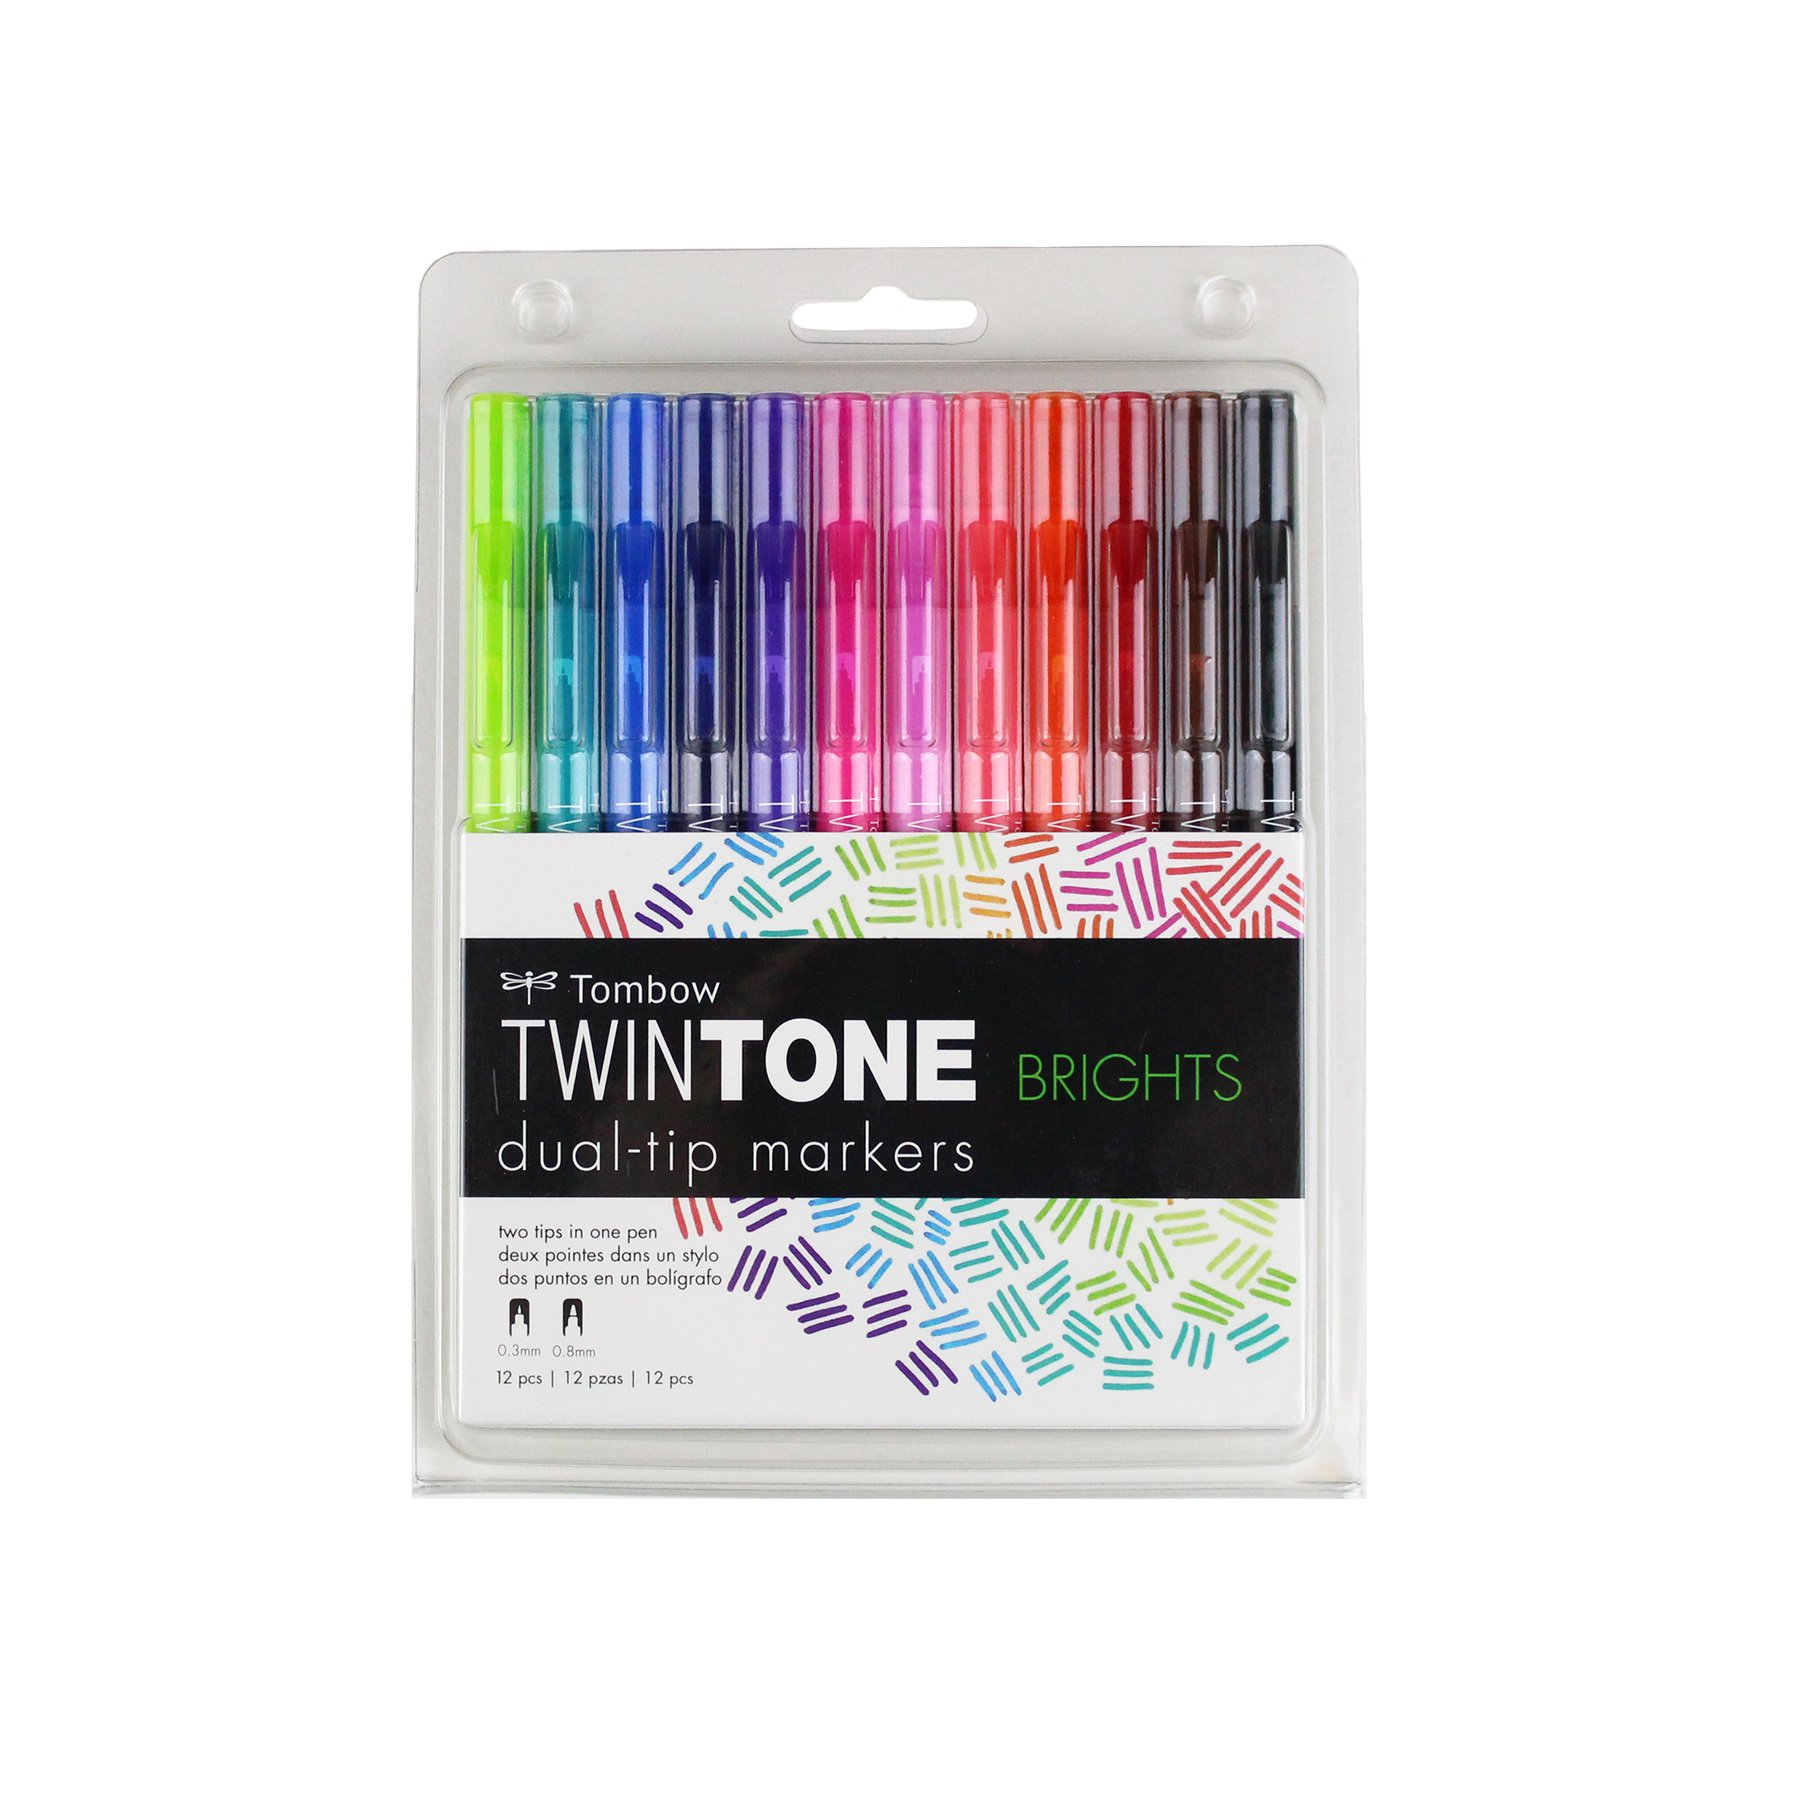 Tombow 61500 TwinTone Marker Set, Bright, 12-Pack. Double-Sided Markers Perfect for Planners, Journals, Doodling, and More!